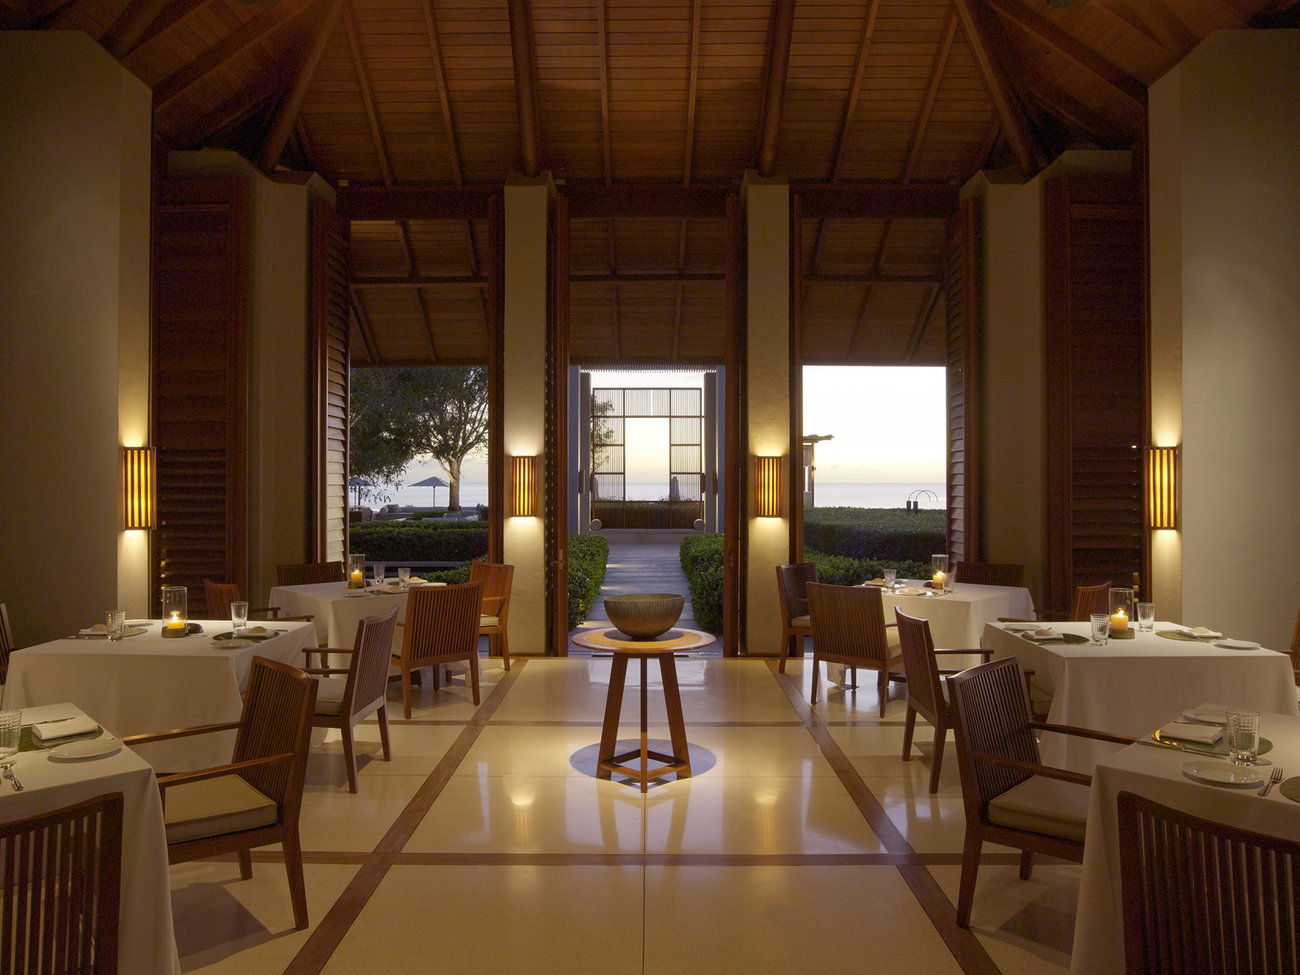 Restaurant at Amanyara in Turks and Caicos